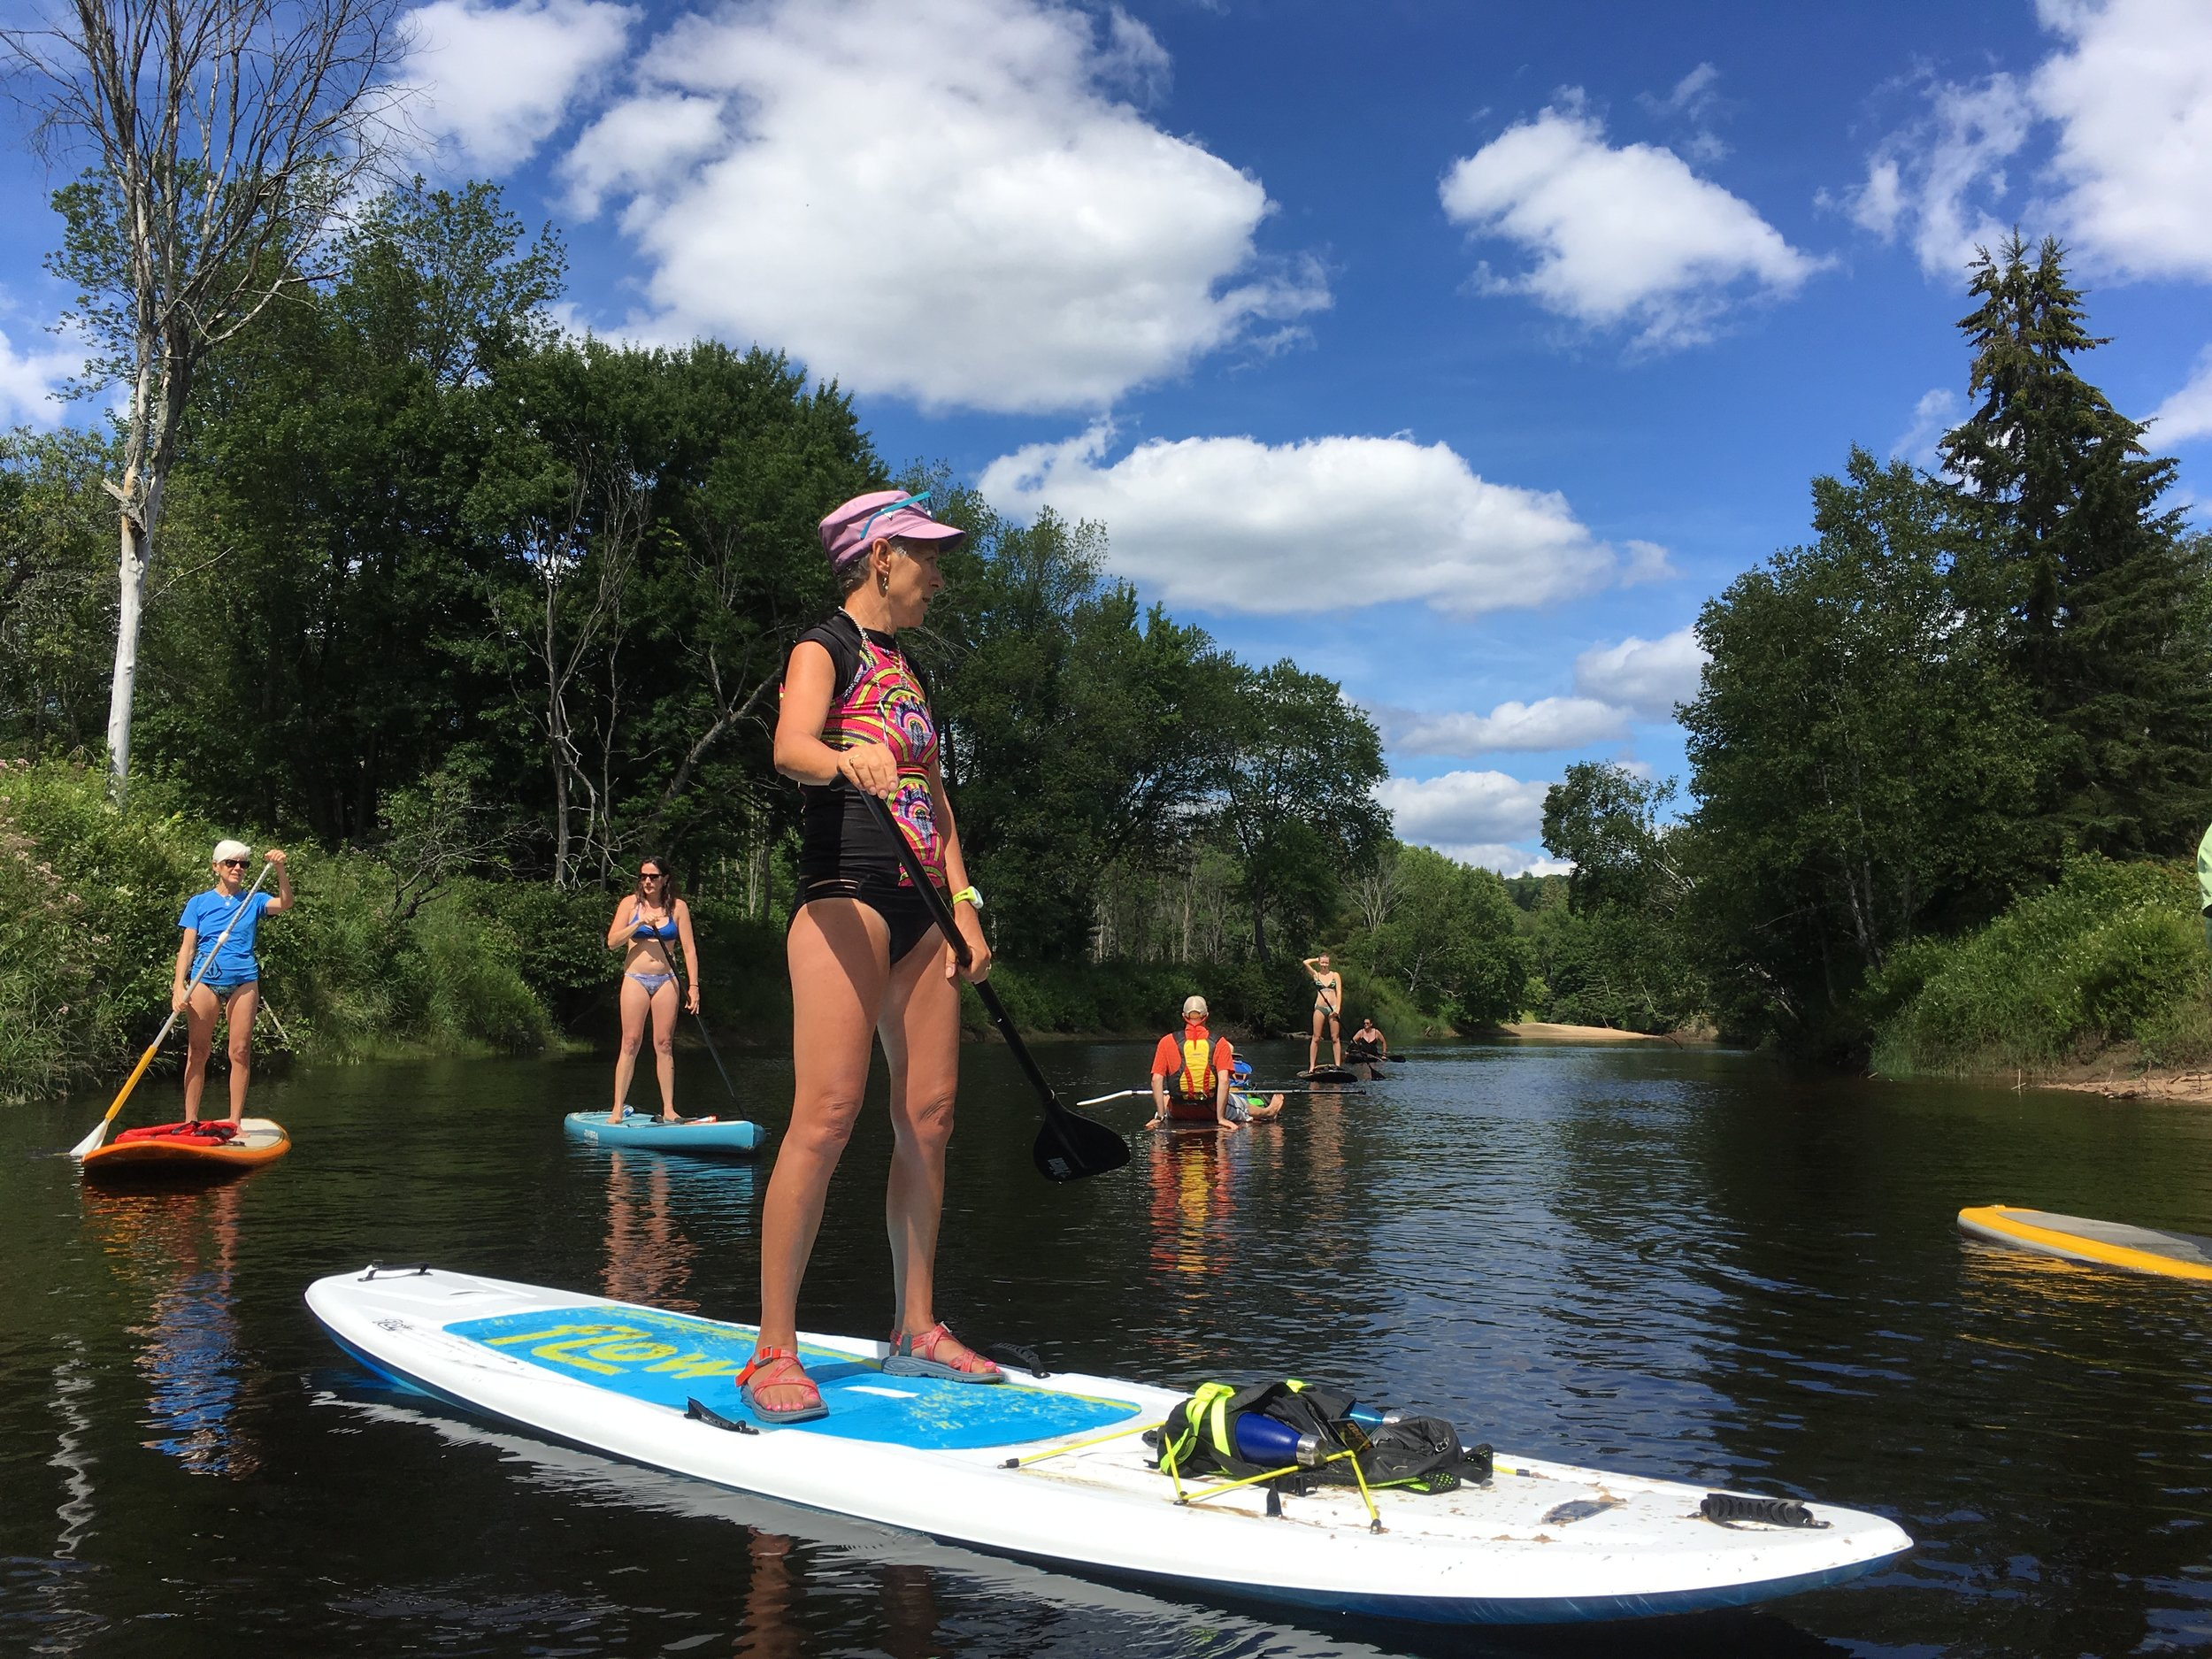 Big Easy Paddleboard floats - Being Wild, Made Easy.Guided family floats orFull Day River Adventures